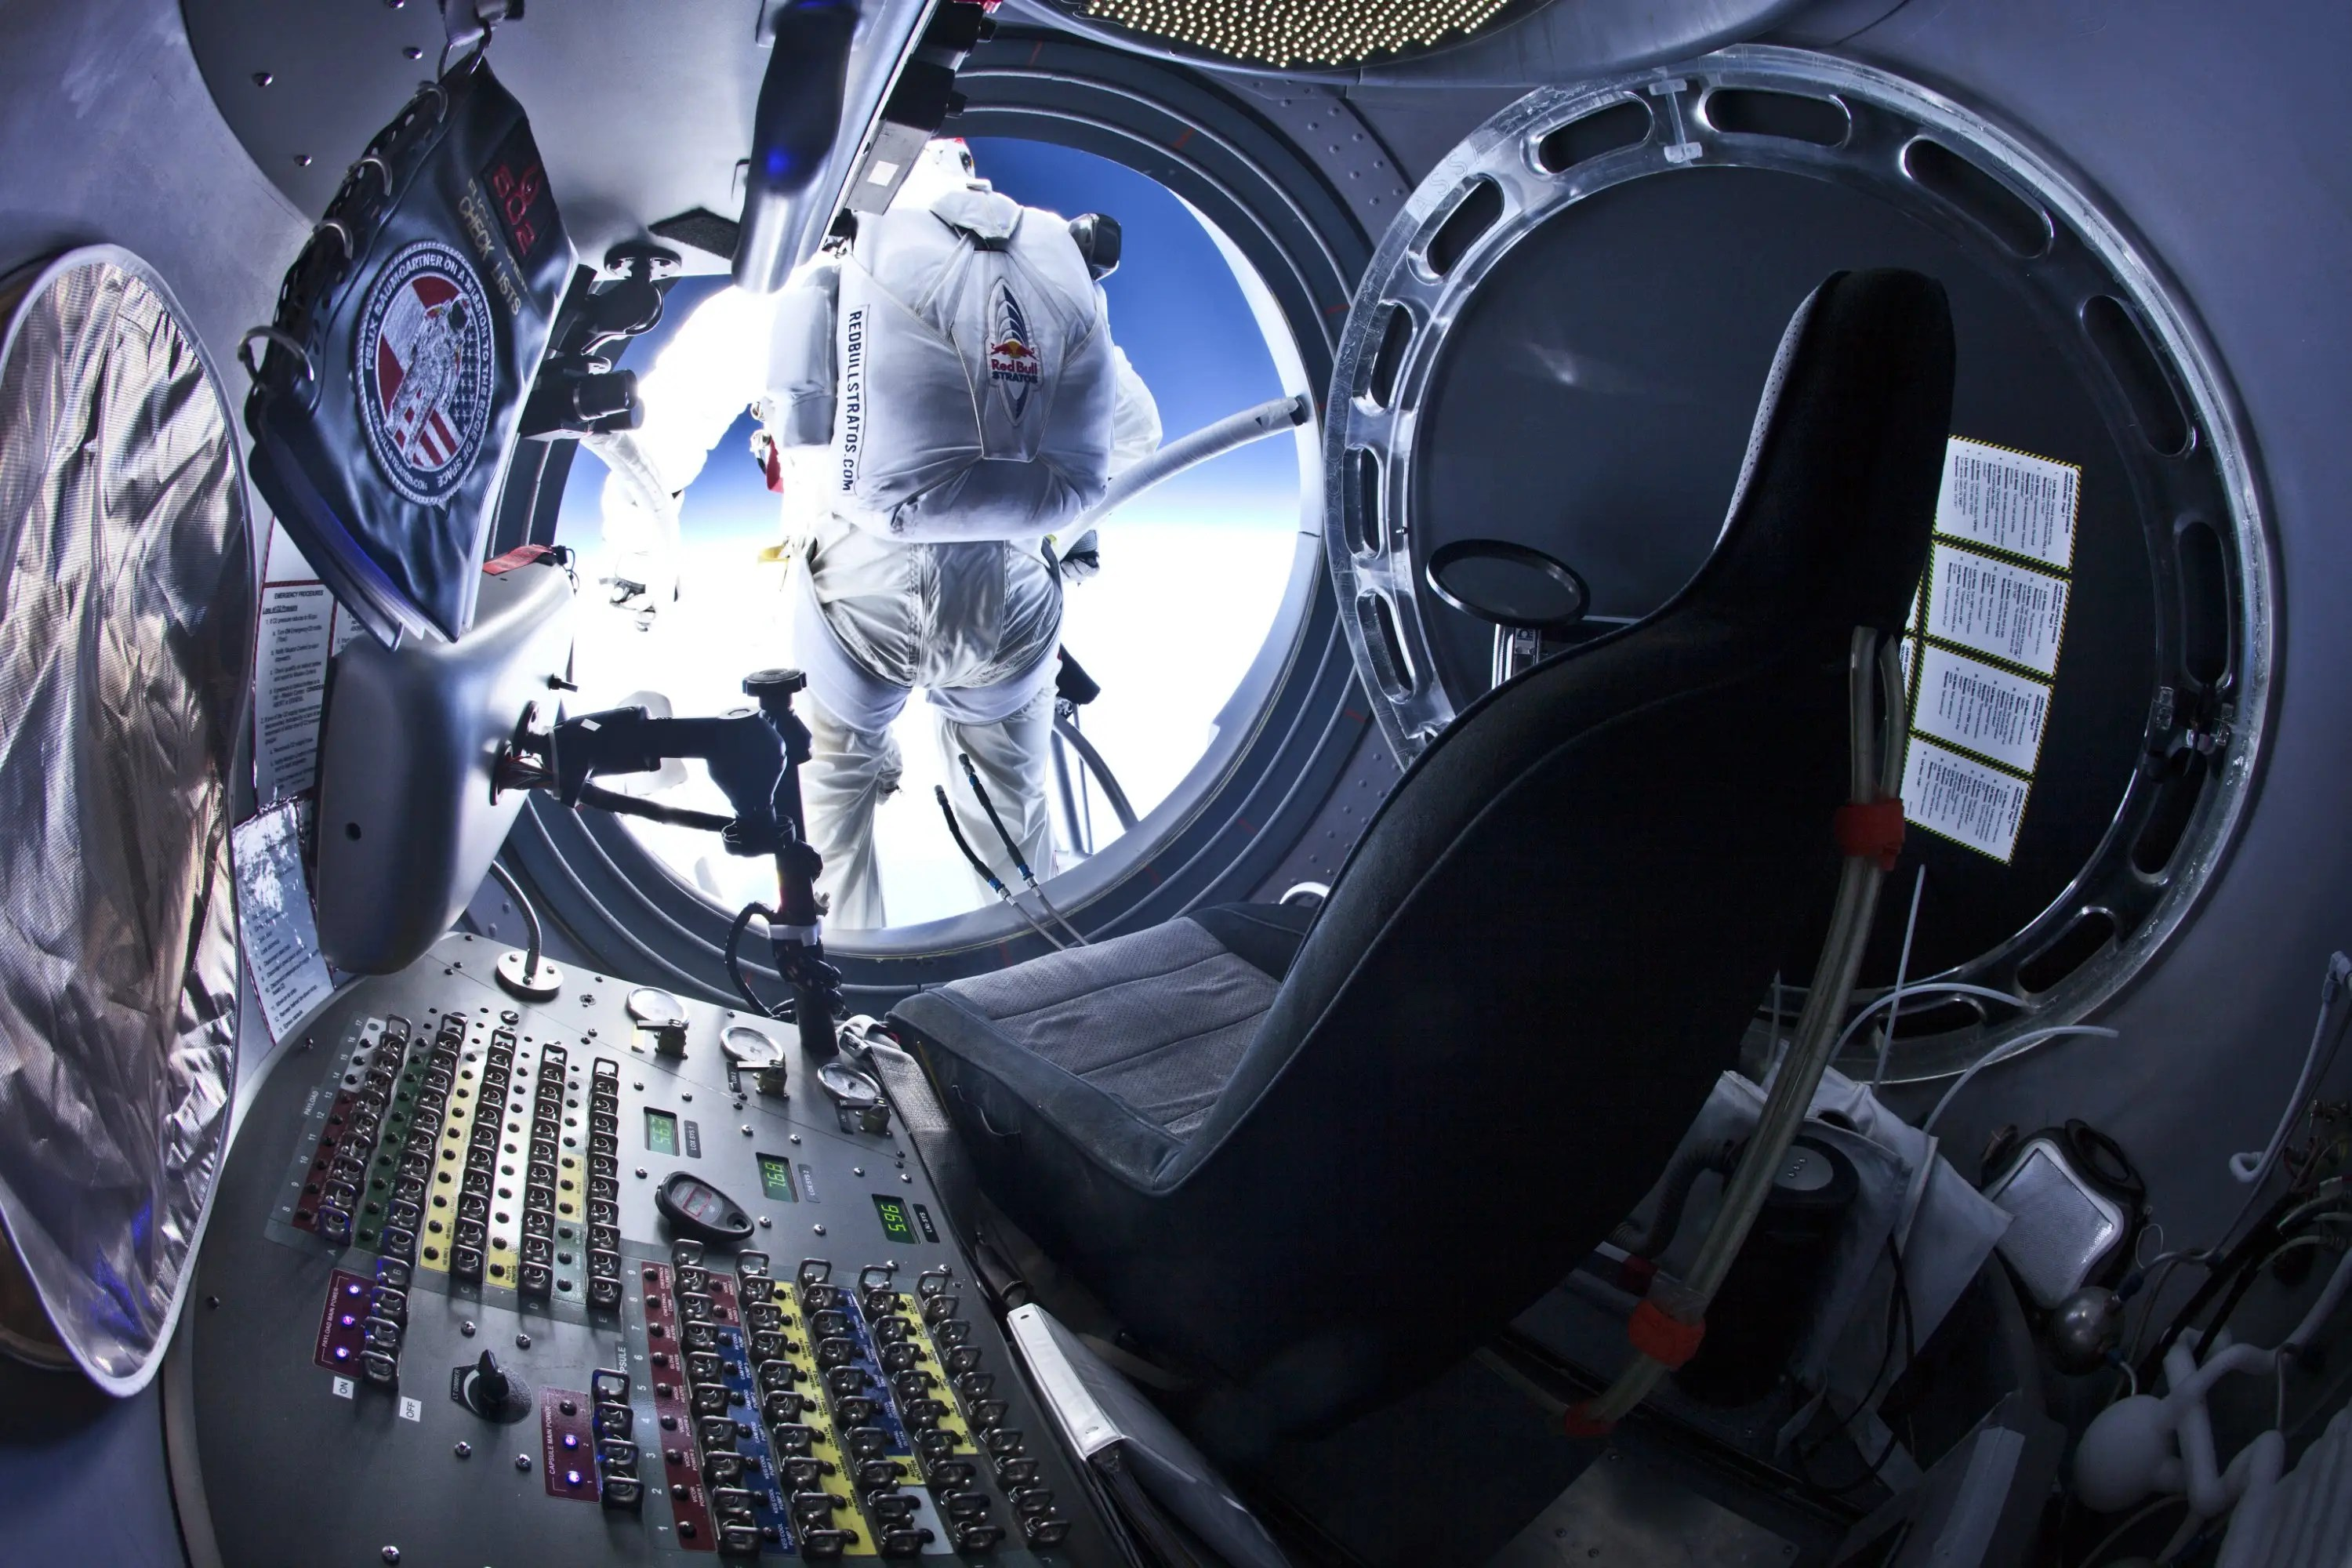 At 120,000 feet, Felix will step out of the capsule and jump.